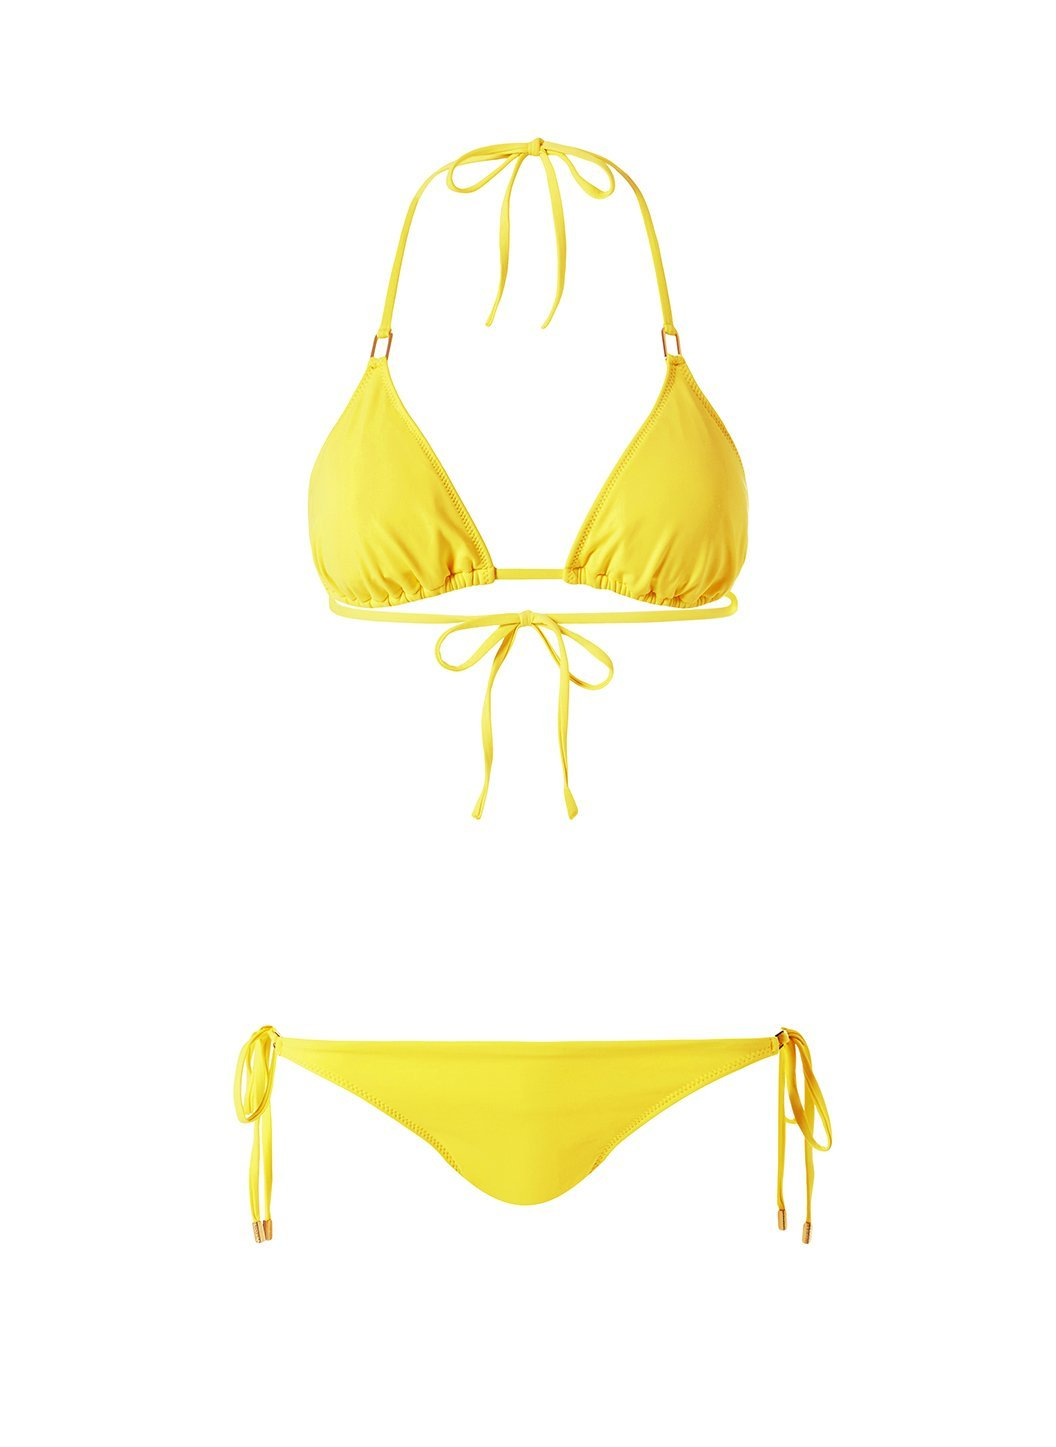 Brussels Flamingo Bikini Bottom CUTOUT